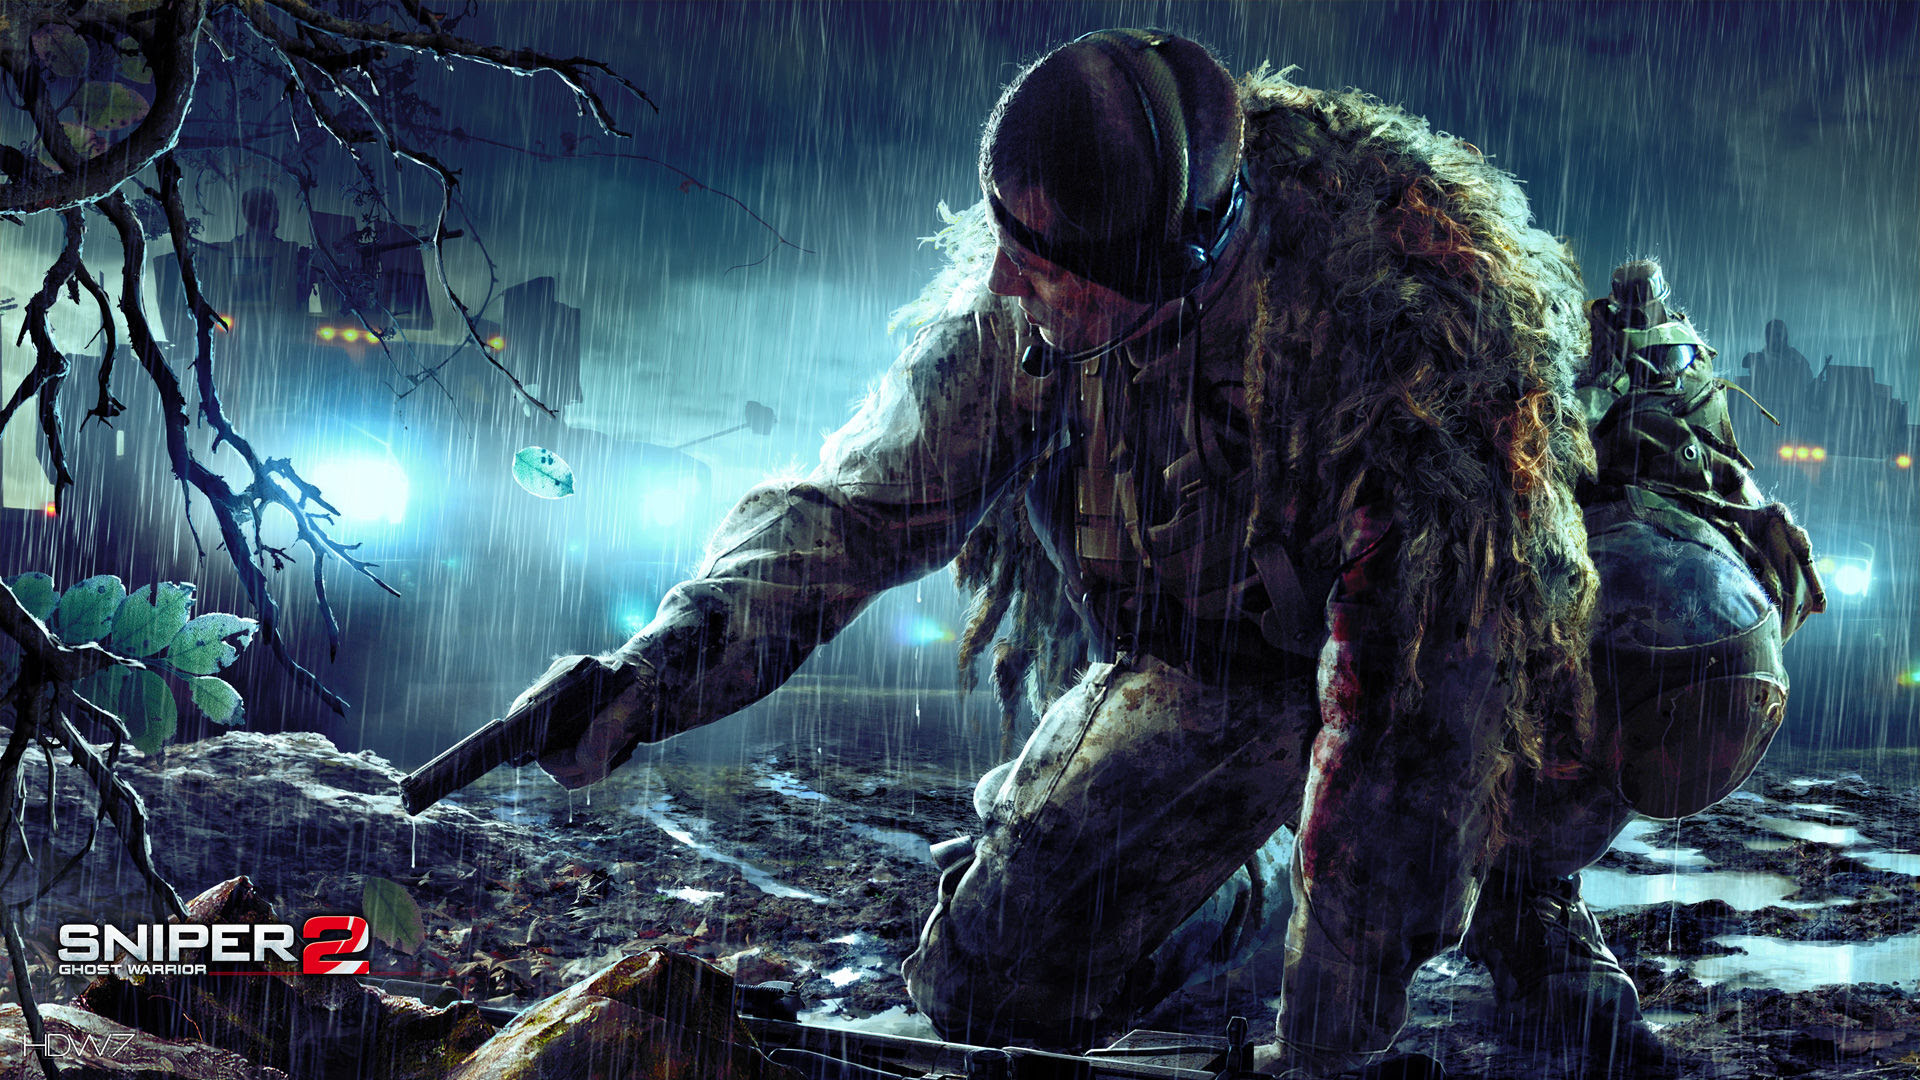 Sniper Ghost Warrior 2 Found Something Widescreen Hd Wallpaper